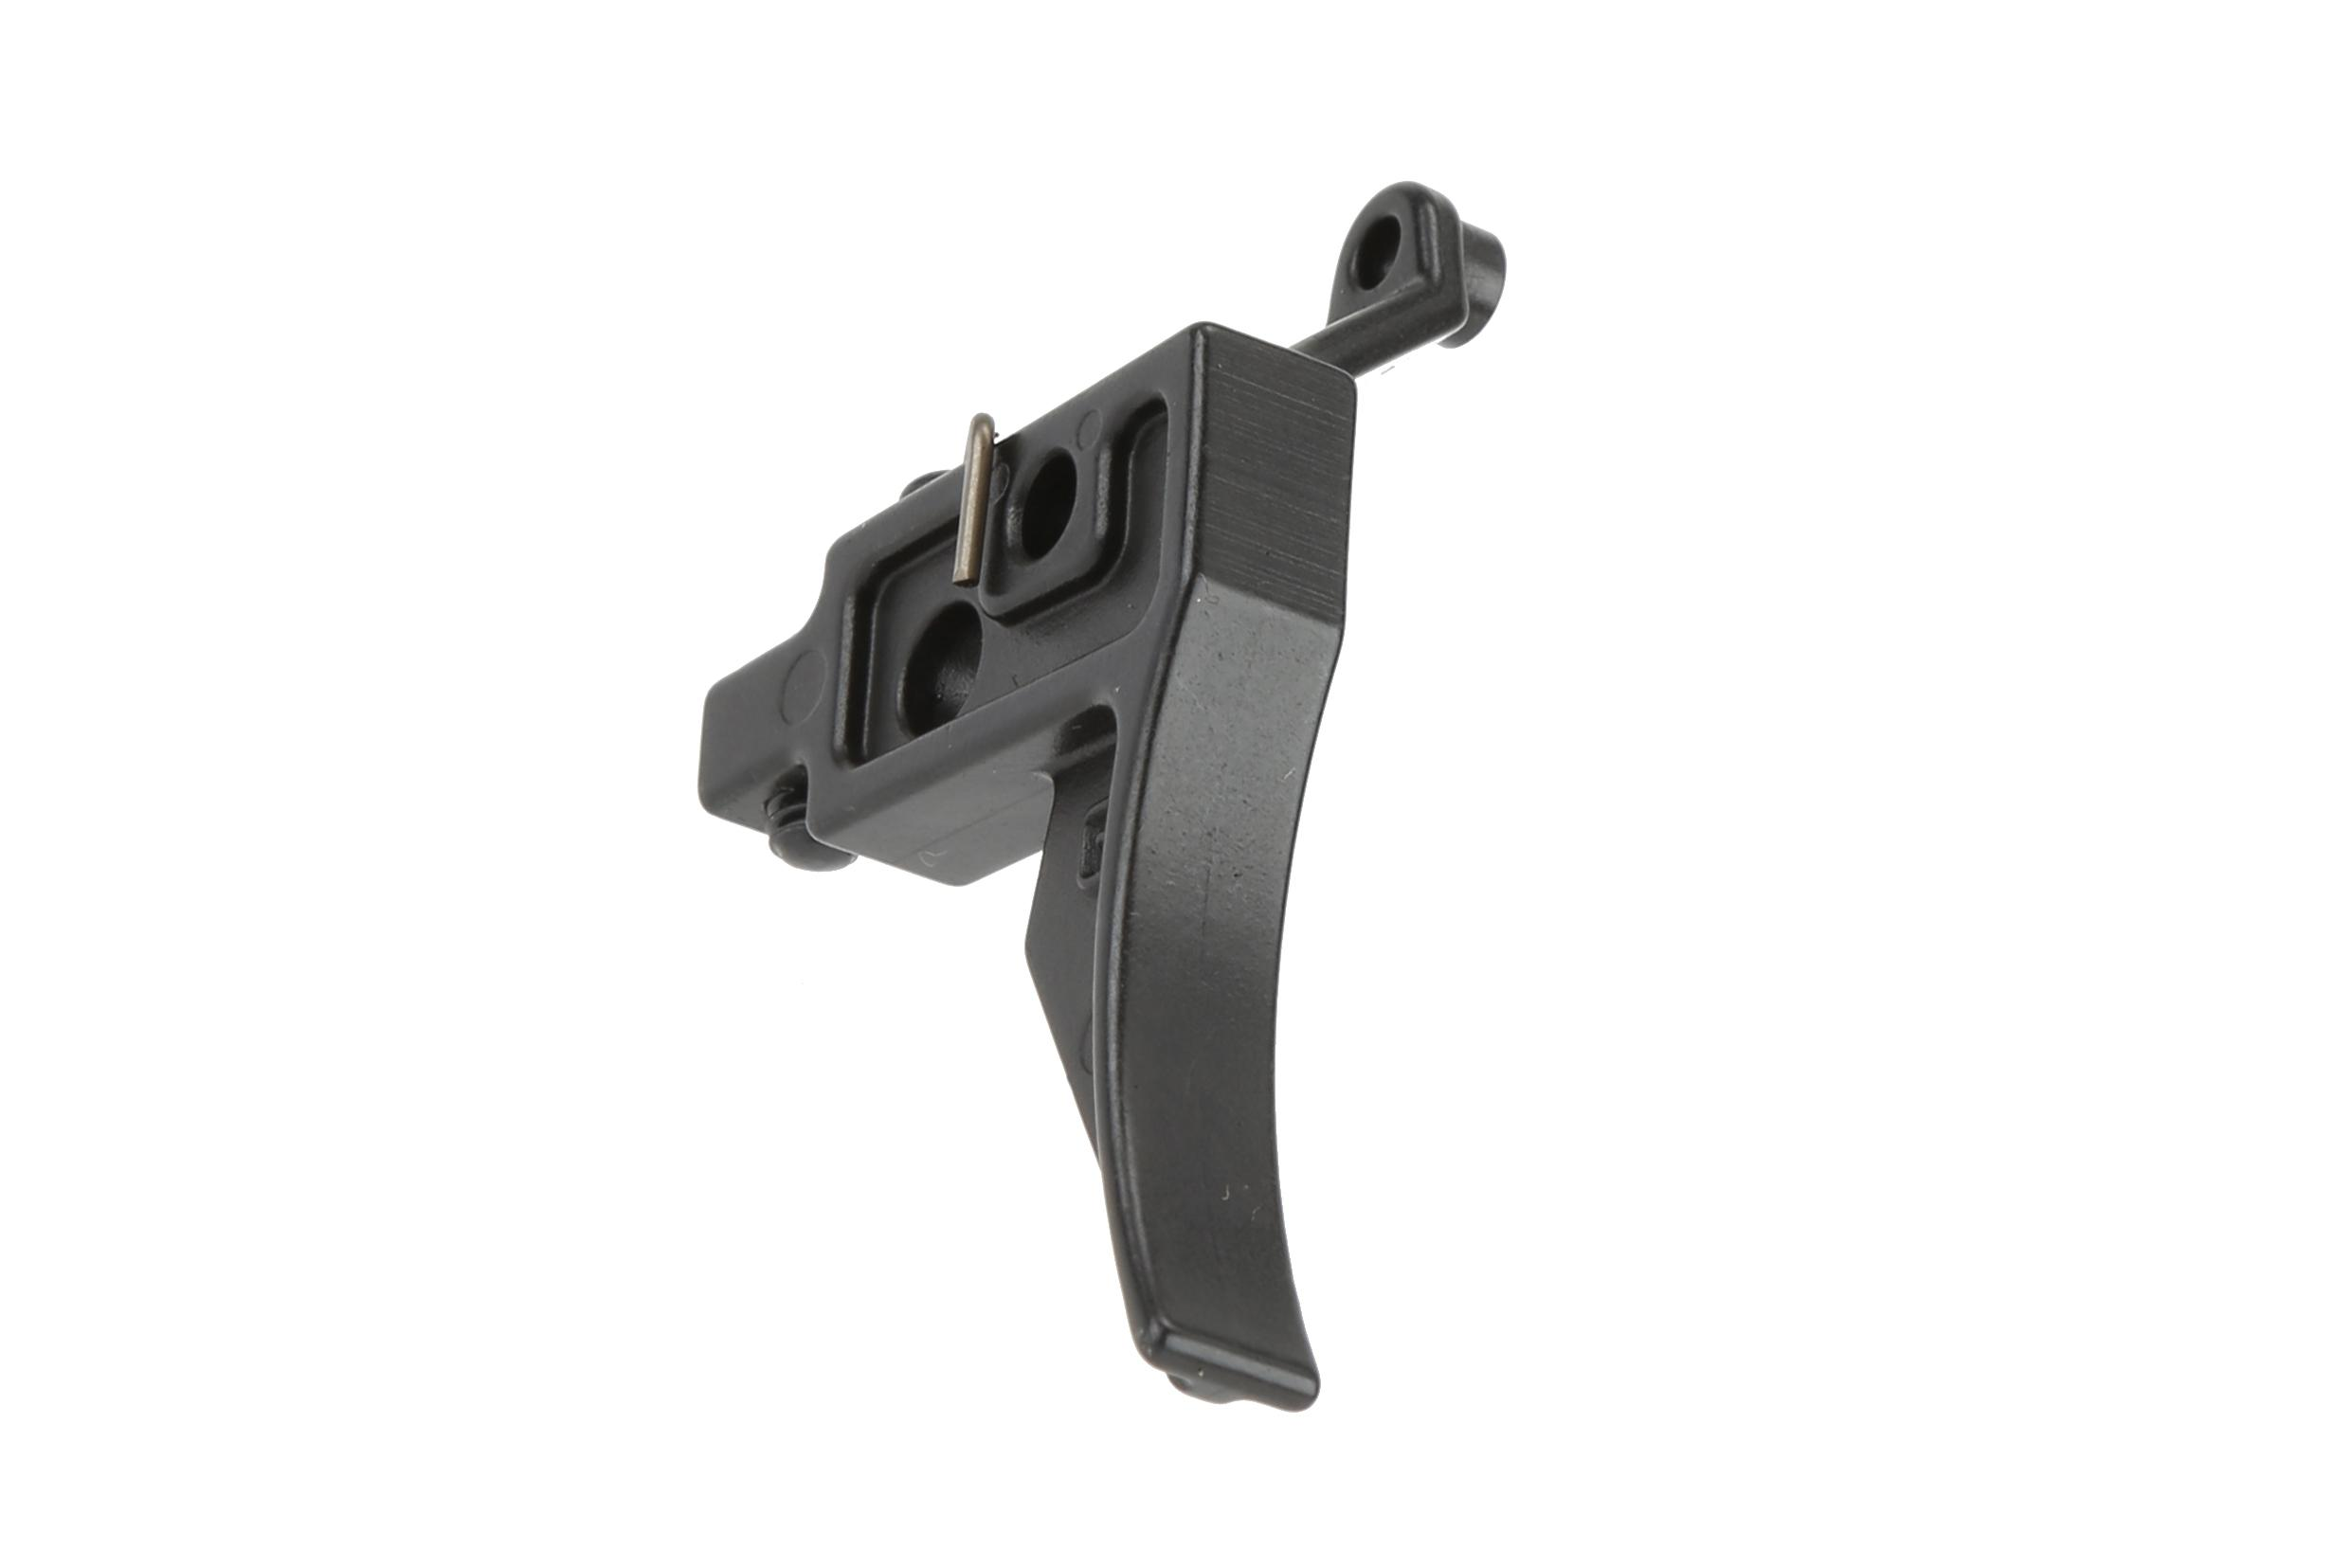 The Geissele Automatics Super Sabra Lightning Bow Trigger for IWI Tavor and X95 is a precision match grade trigger